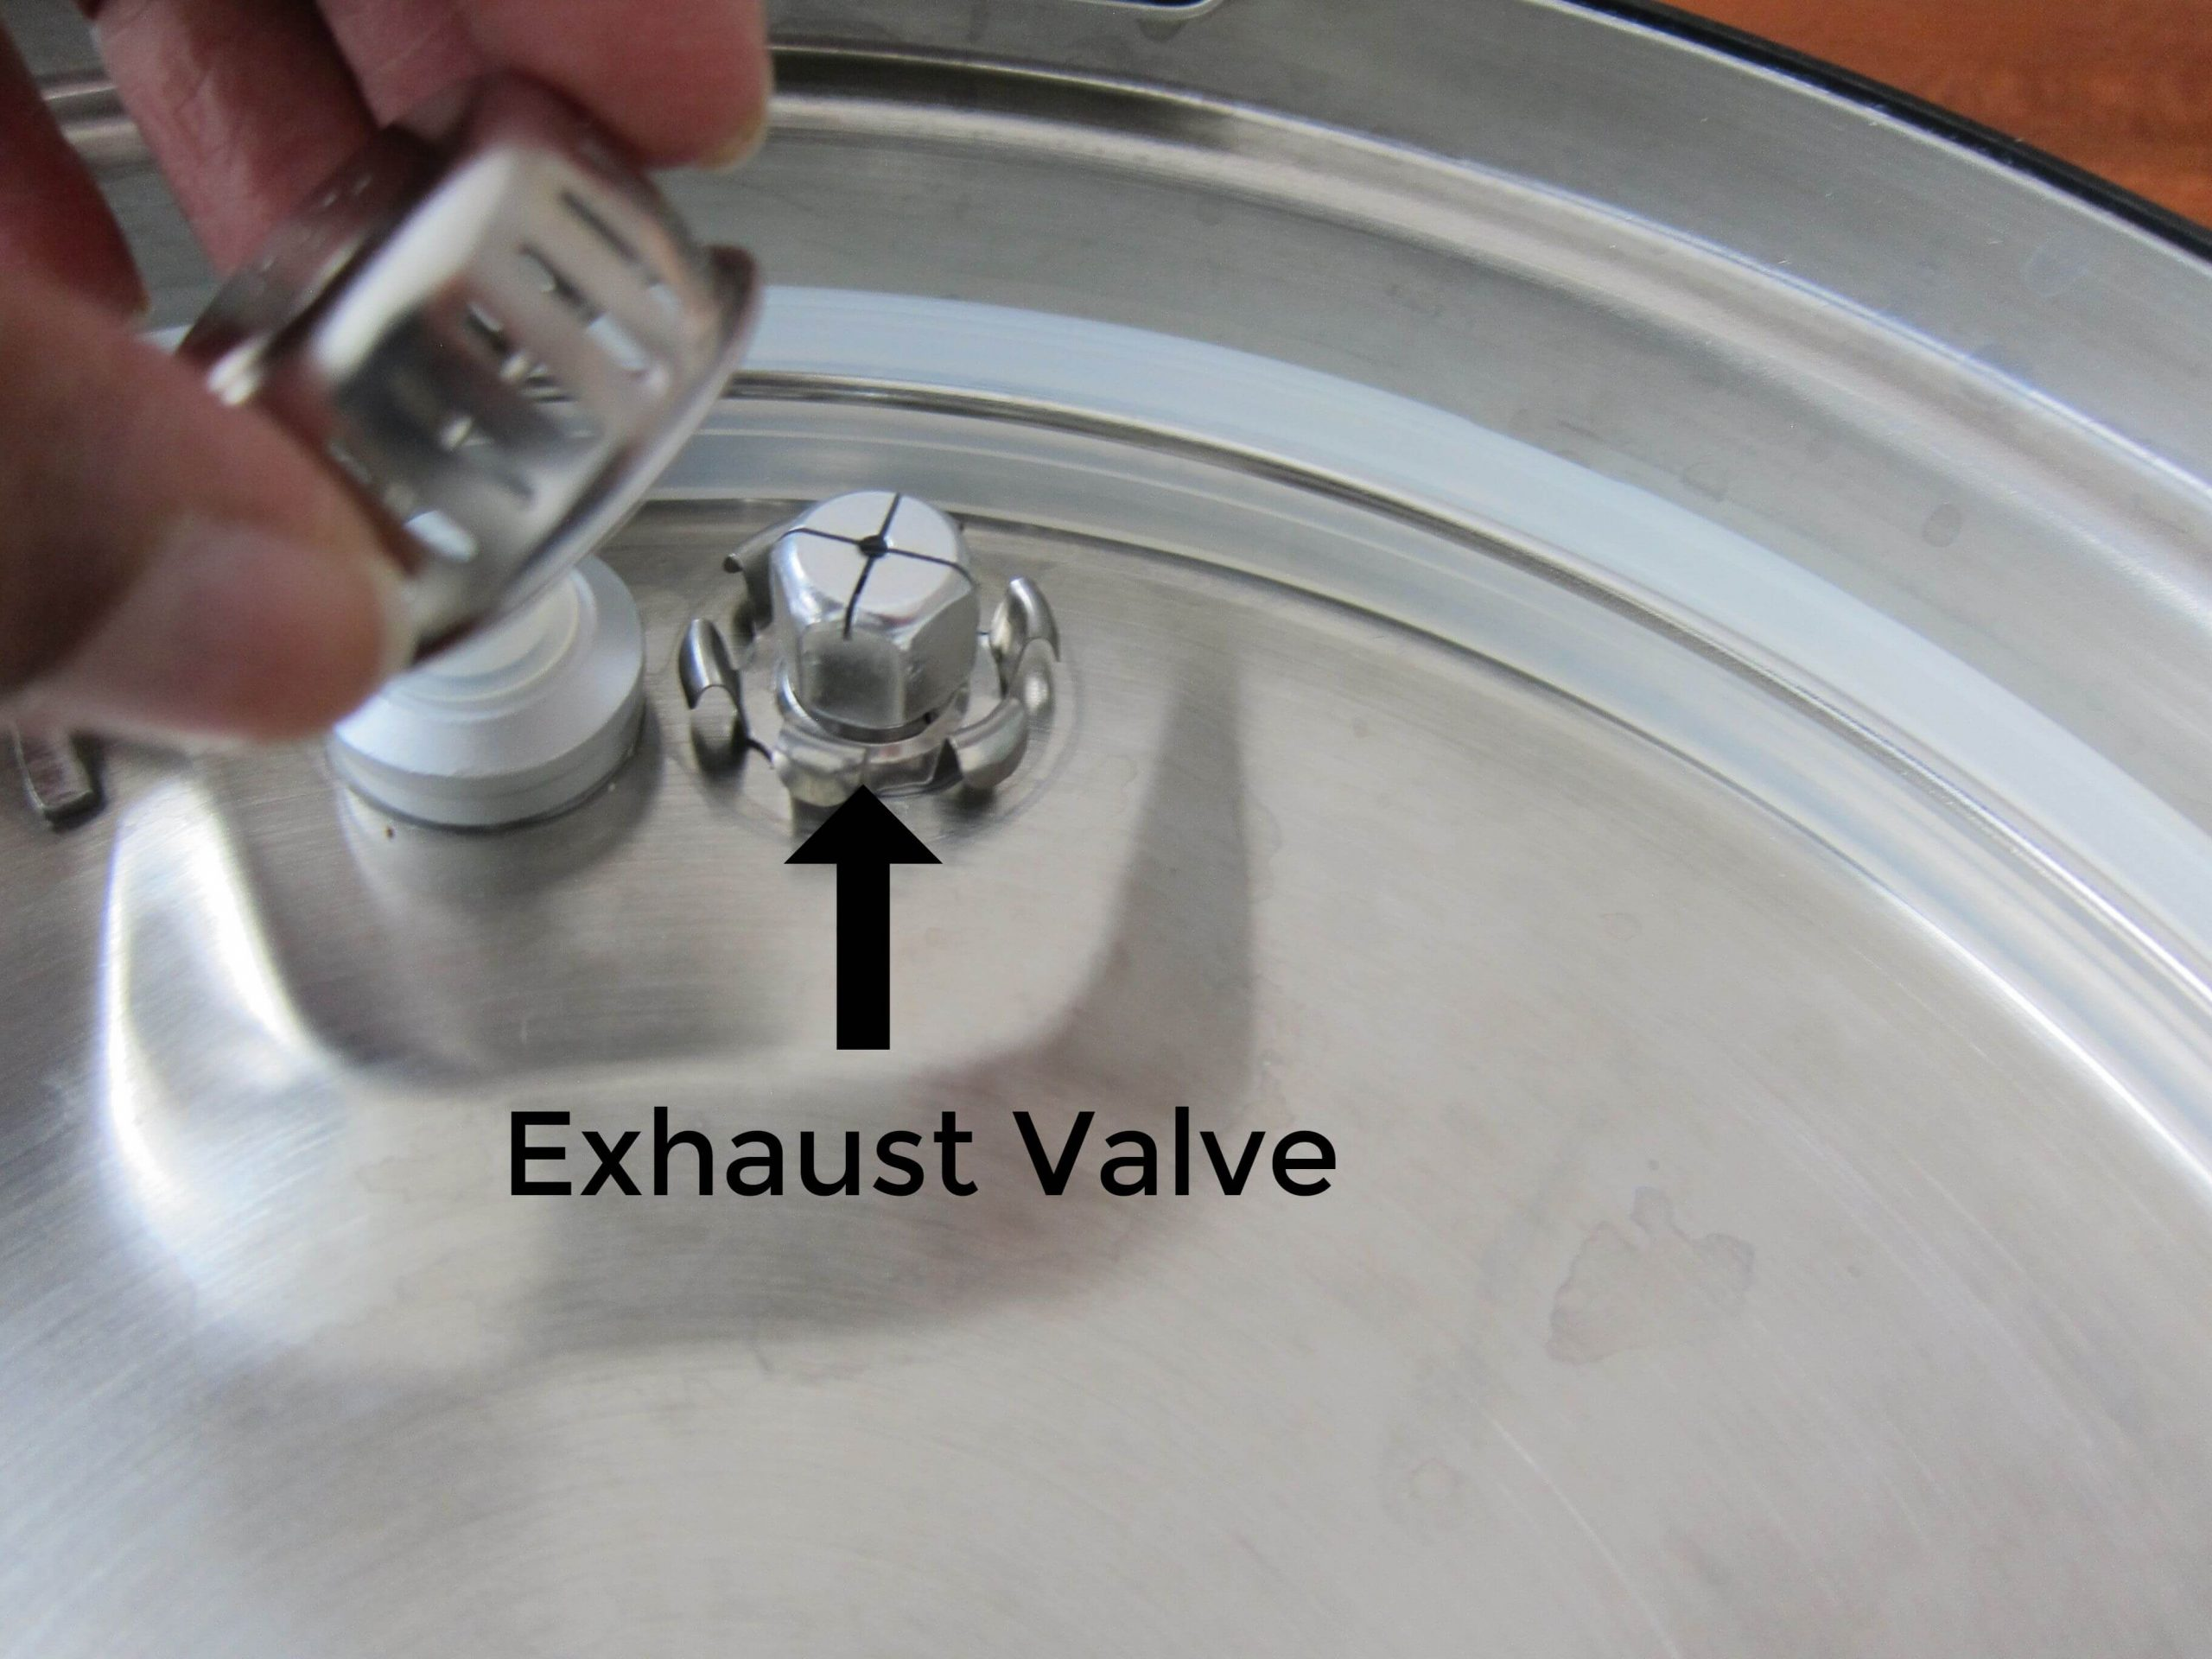 instant pot lid with anti-block shield being removed and arrow pointing to exhaust valve